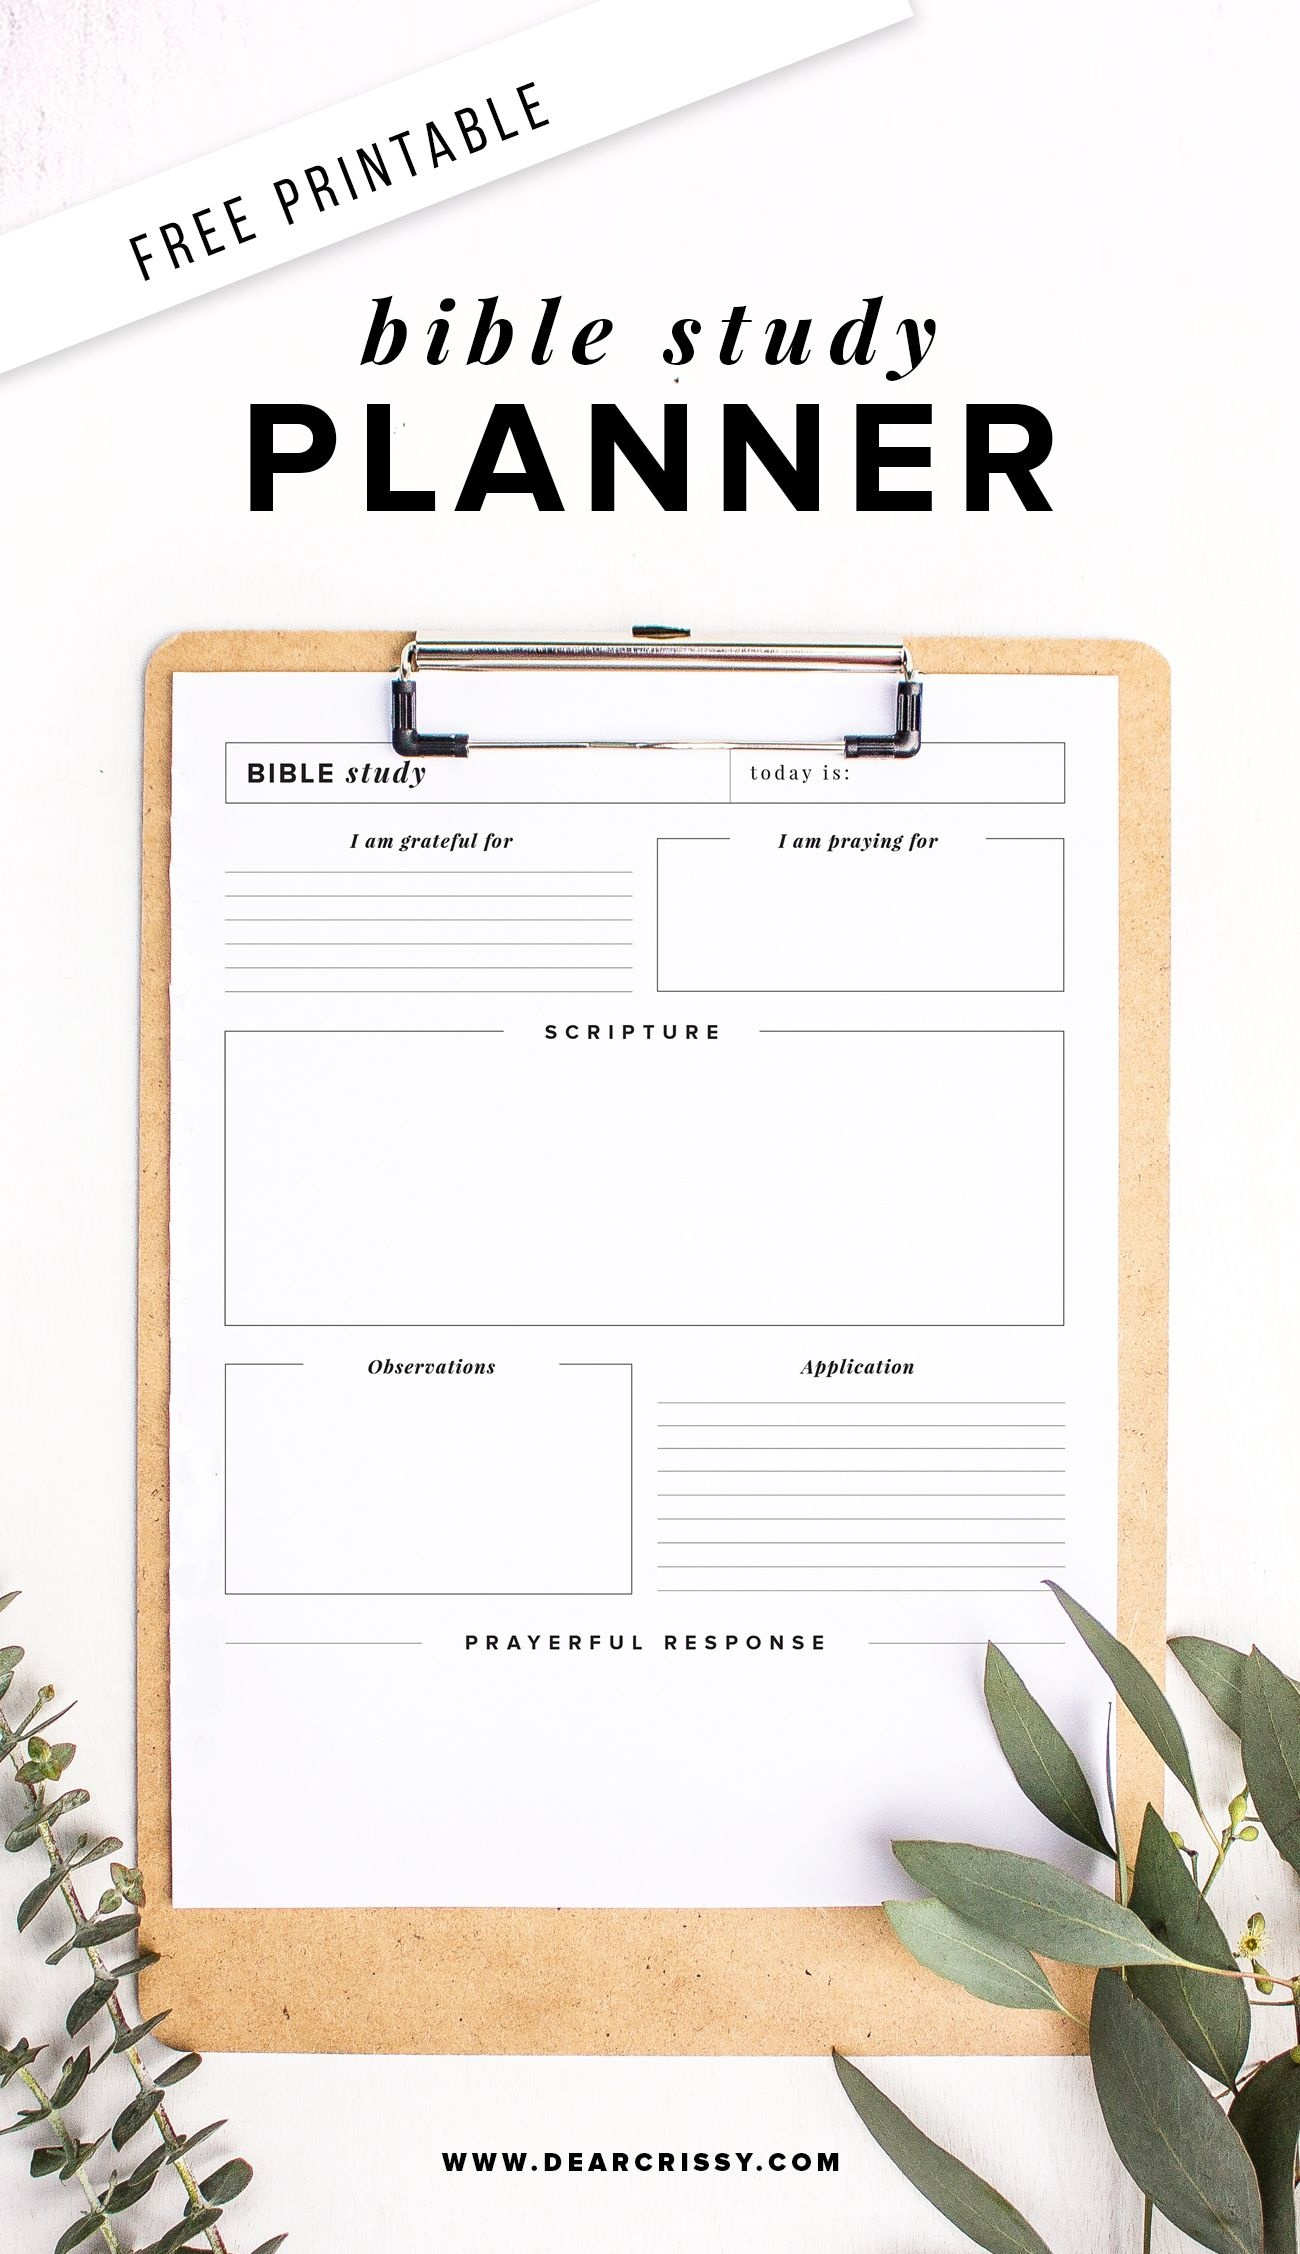 Free Printable Bible Study Planner - Soap Method Bible Study - Free Printable Bible Study Worksheets